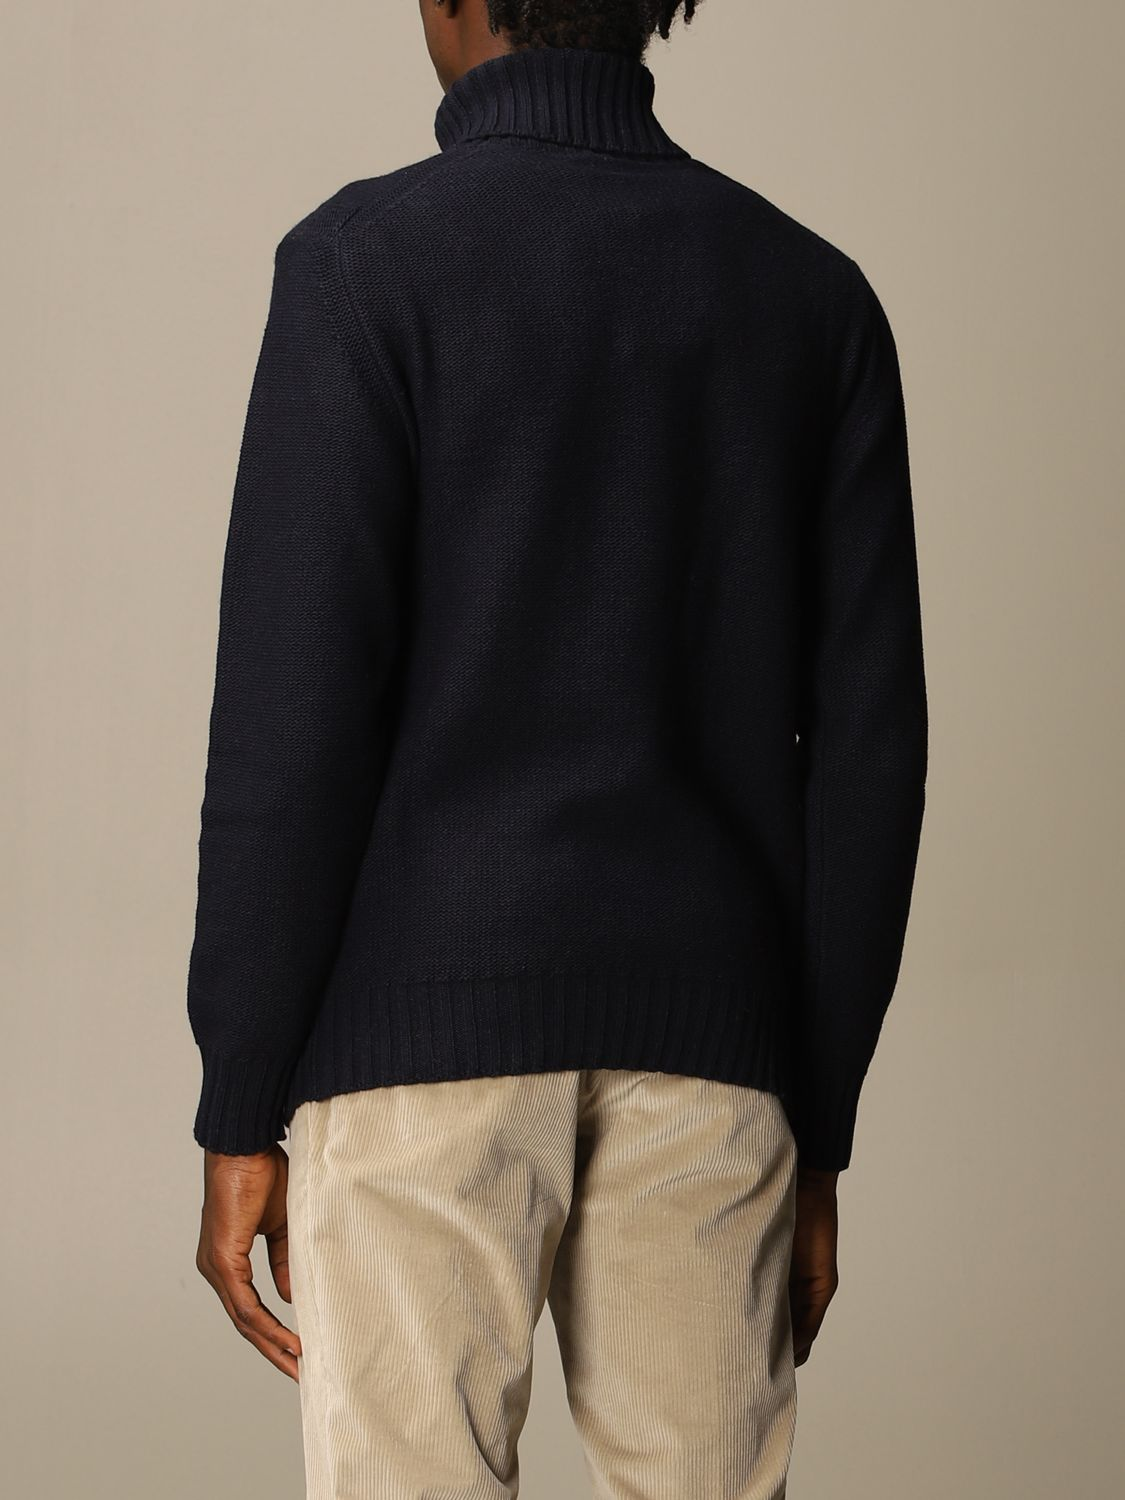 Sweater Brooksfield: Brooksfield turtleneck in wide cable knit blue 1